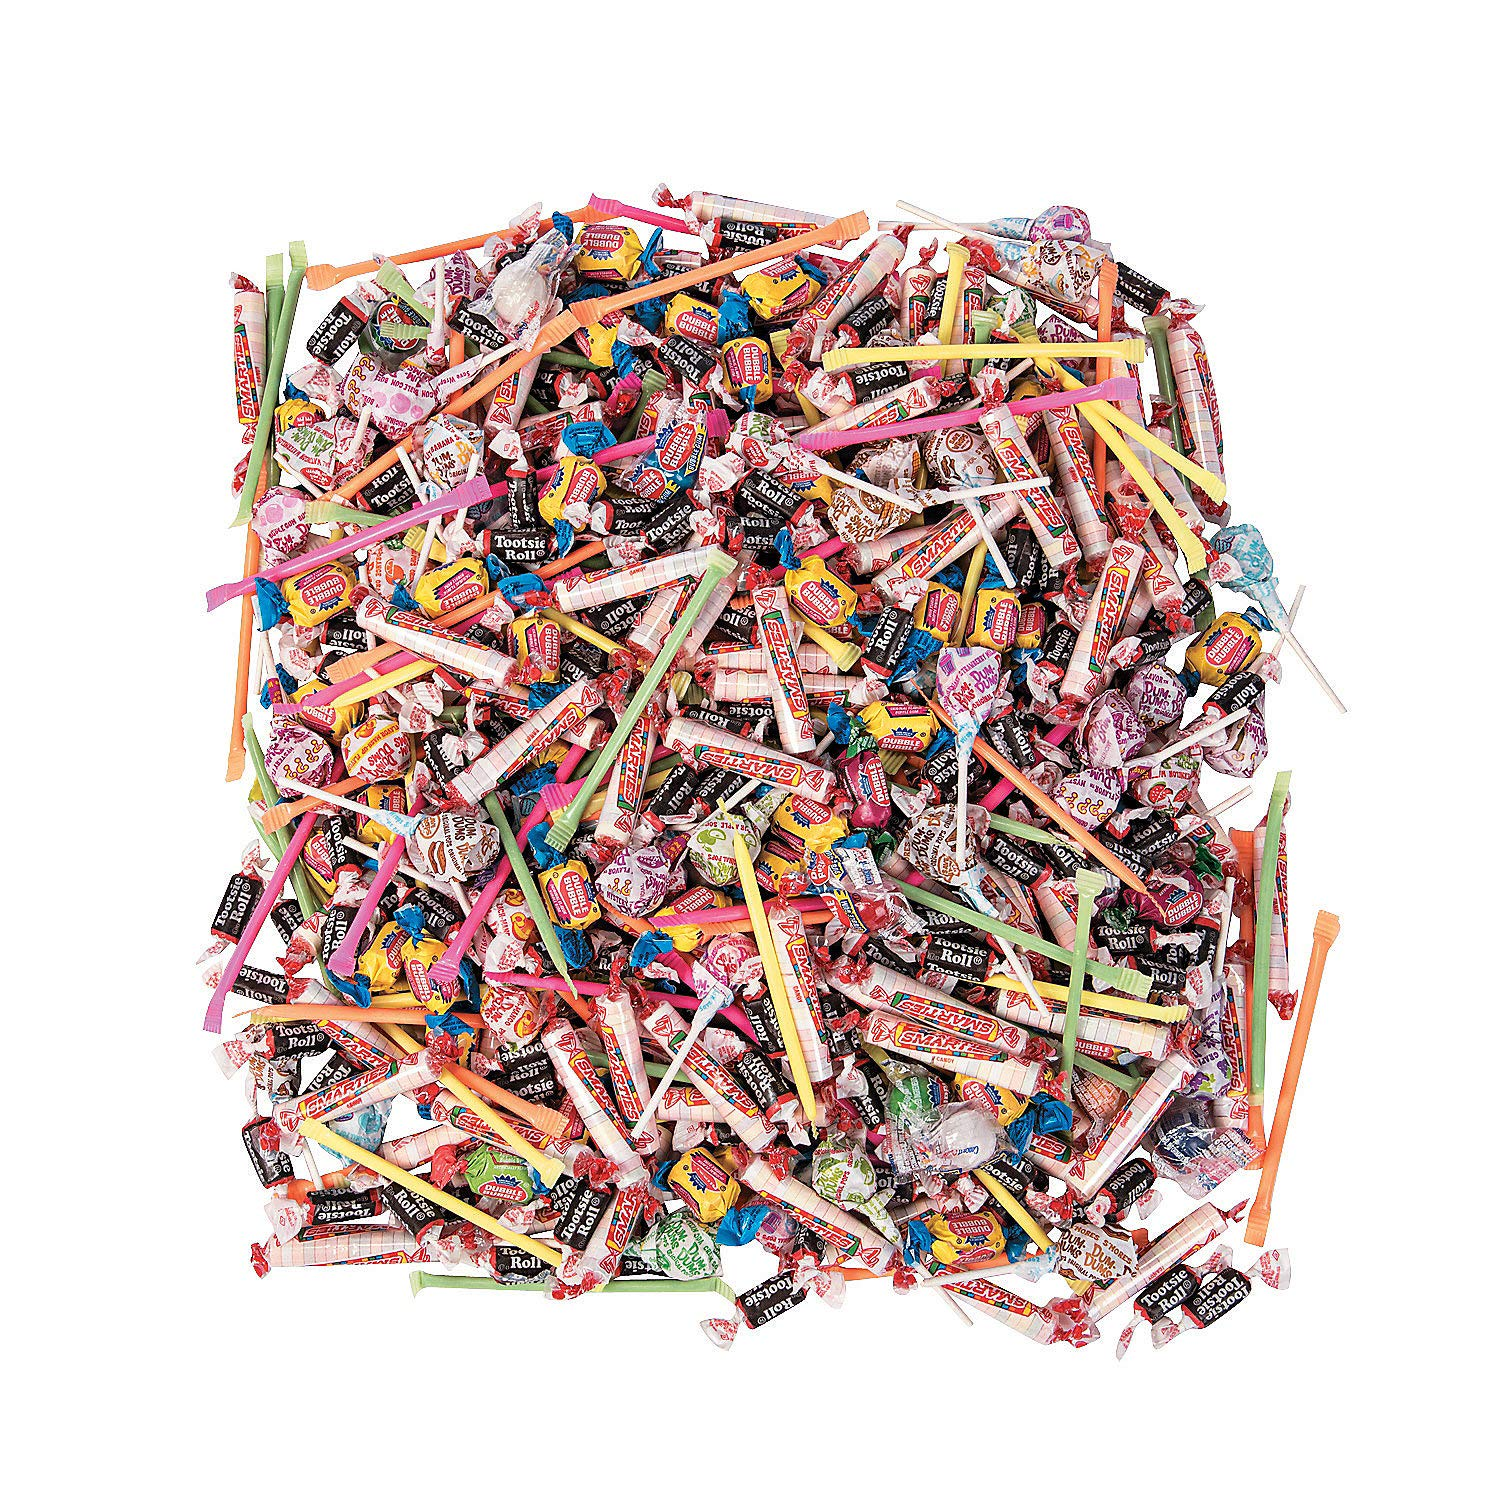 Bulk Candy Individually Wrapped 1000 Pieces (9 lbs) Perfect Parties, Halloween, Parades and Pinatas by Fun Express (Image #1)